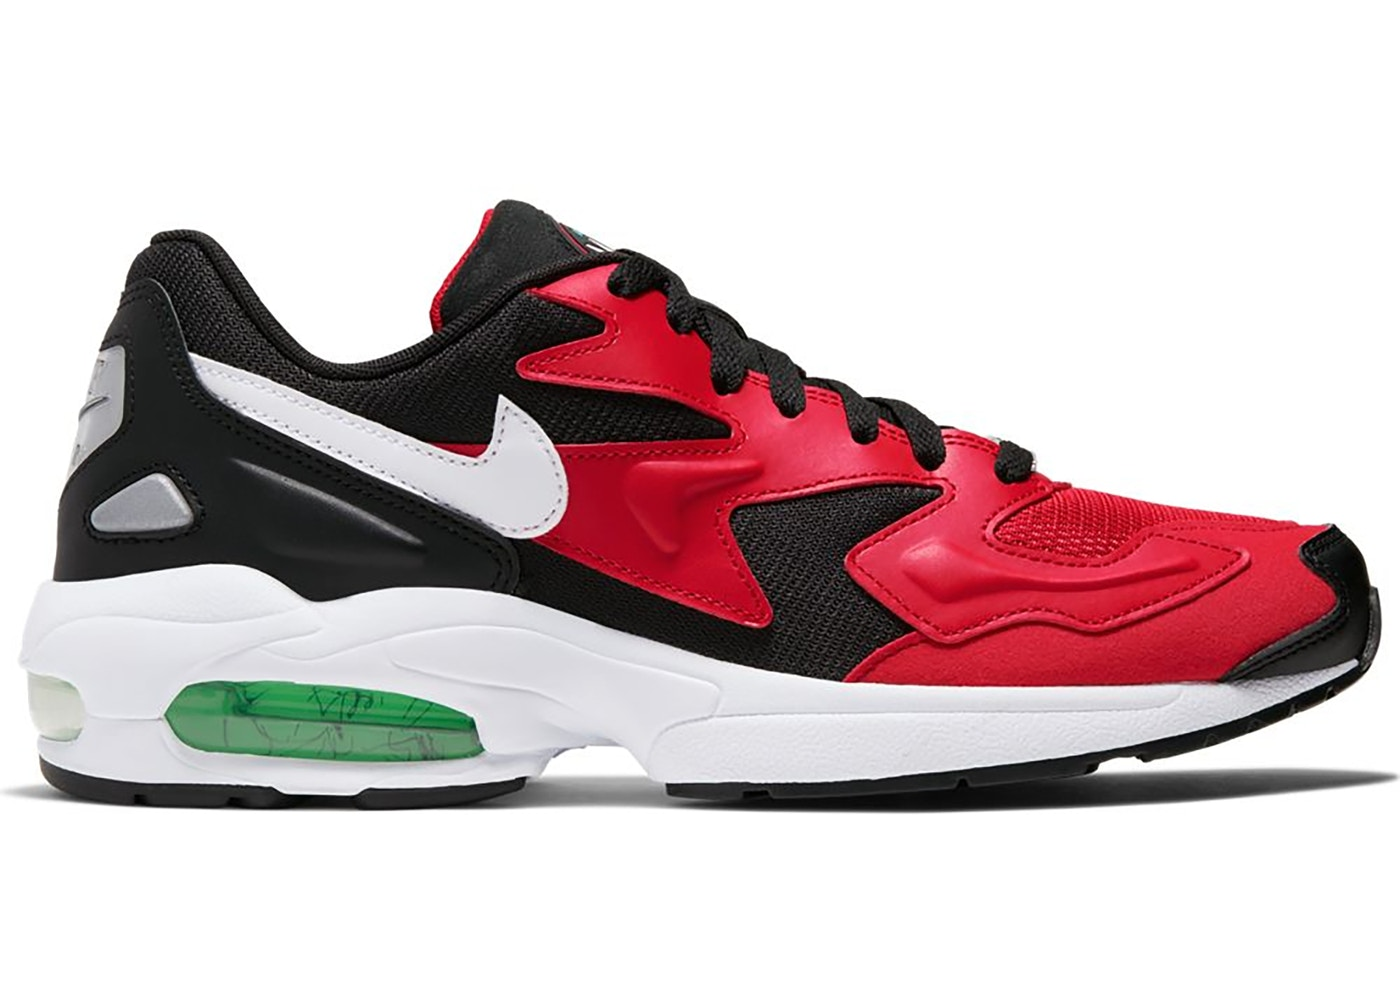 Nike Air Max 2 Light Black Red Electro Green - AO1741-003